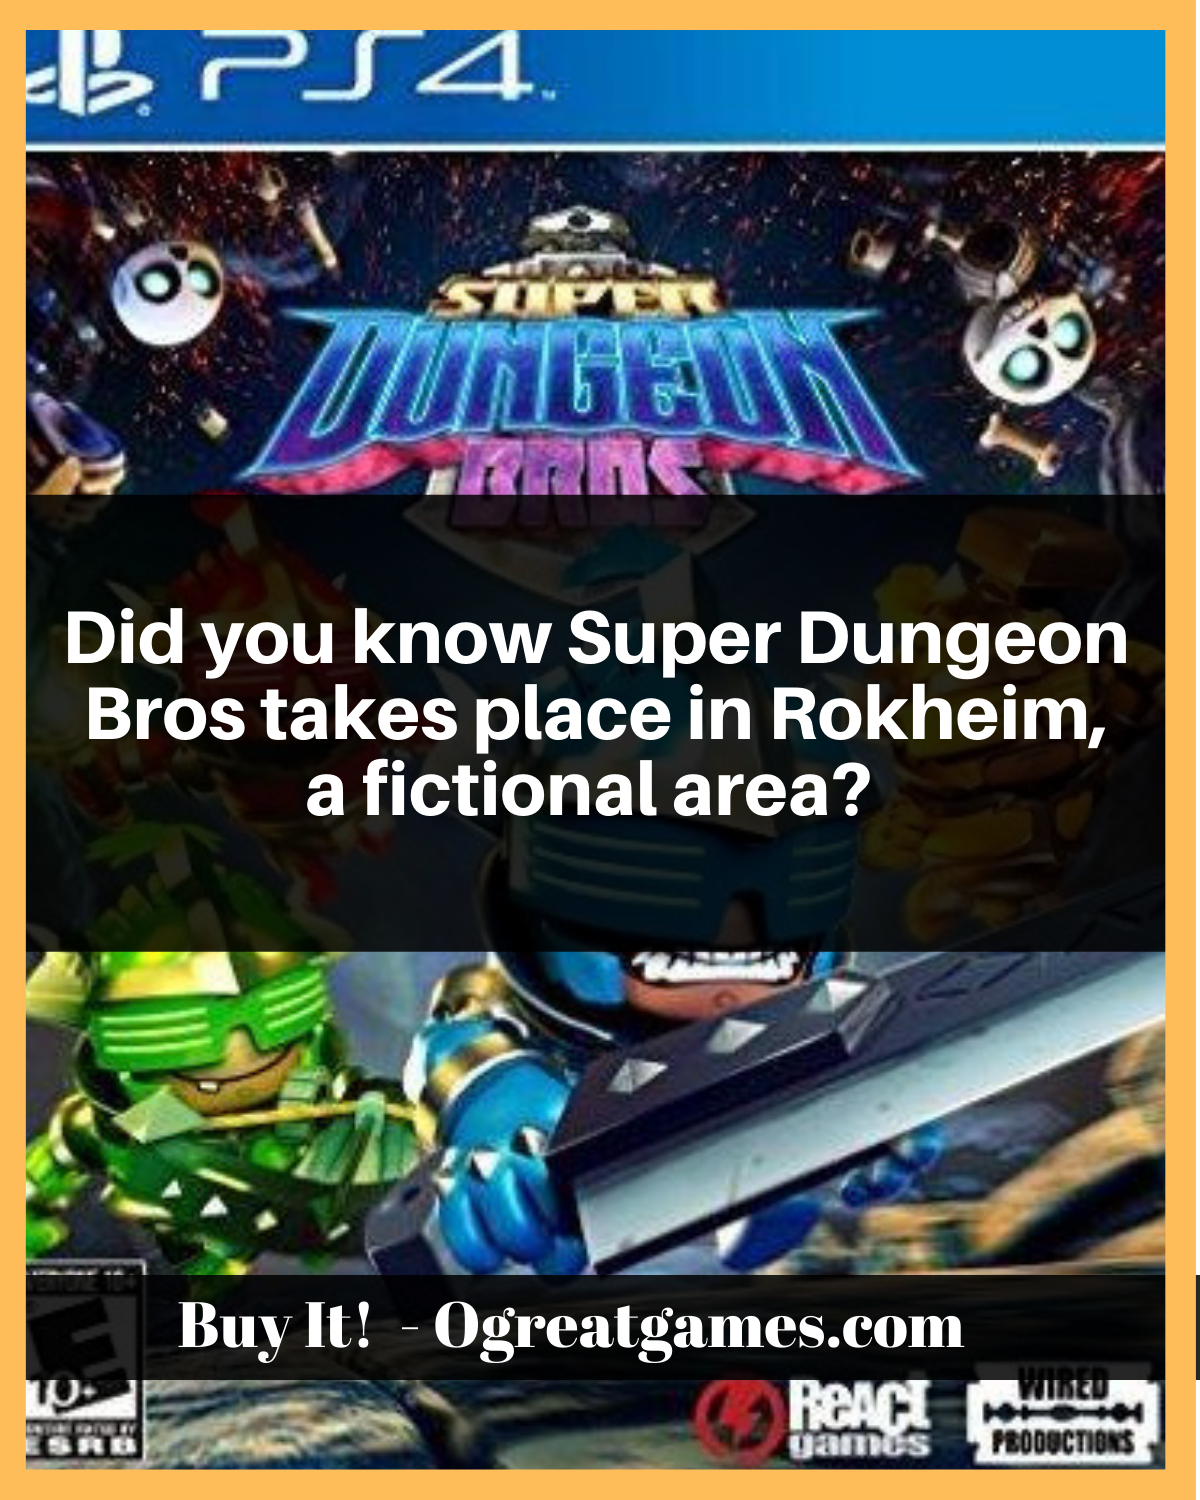 Super Dungeon Bros PlayStation 4 Playstation, Terms of